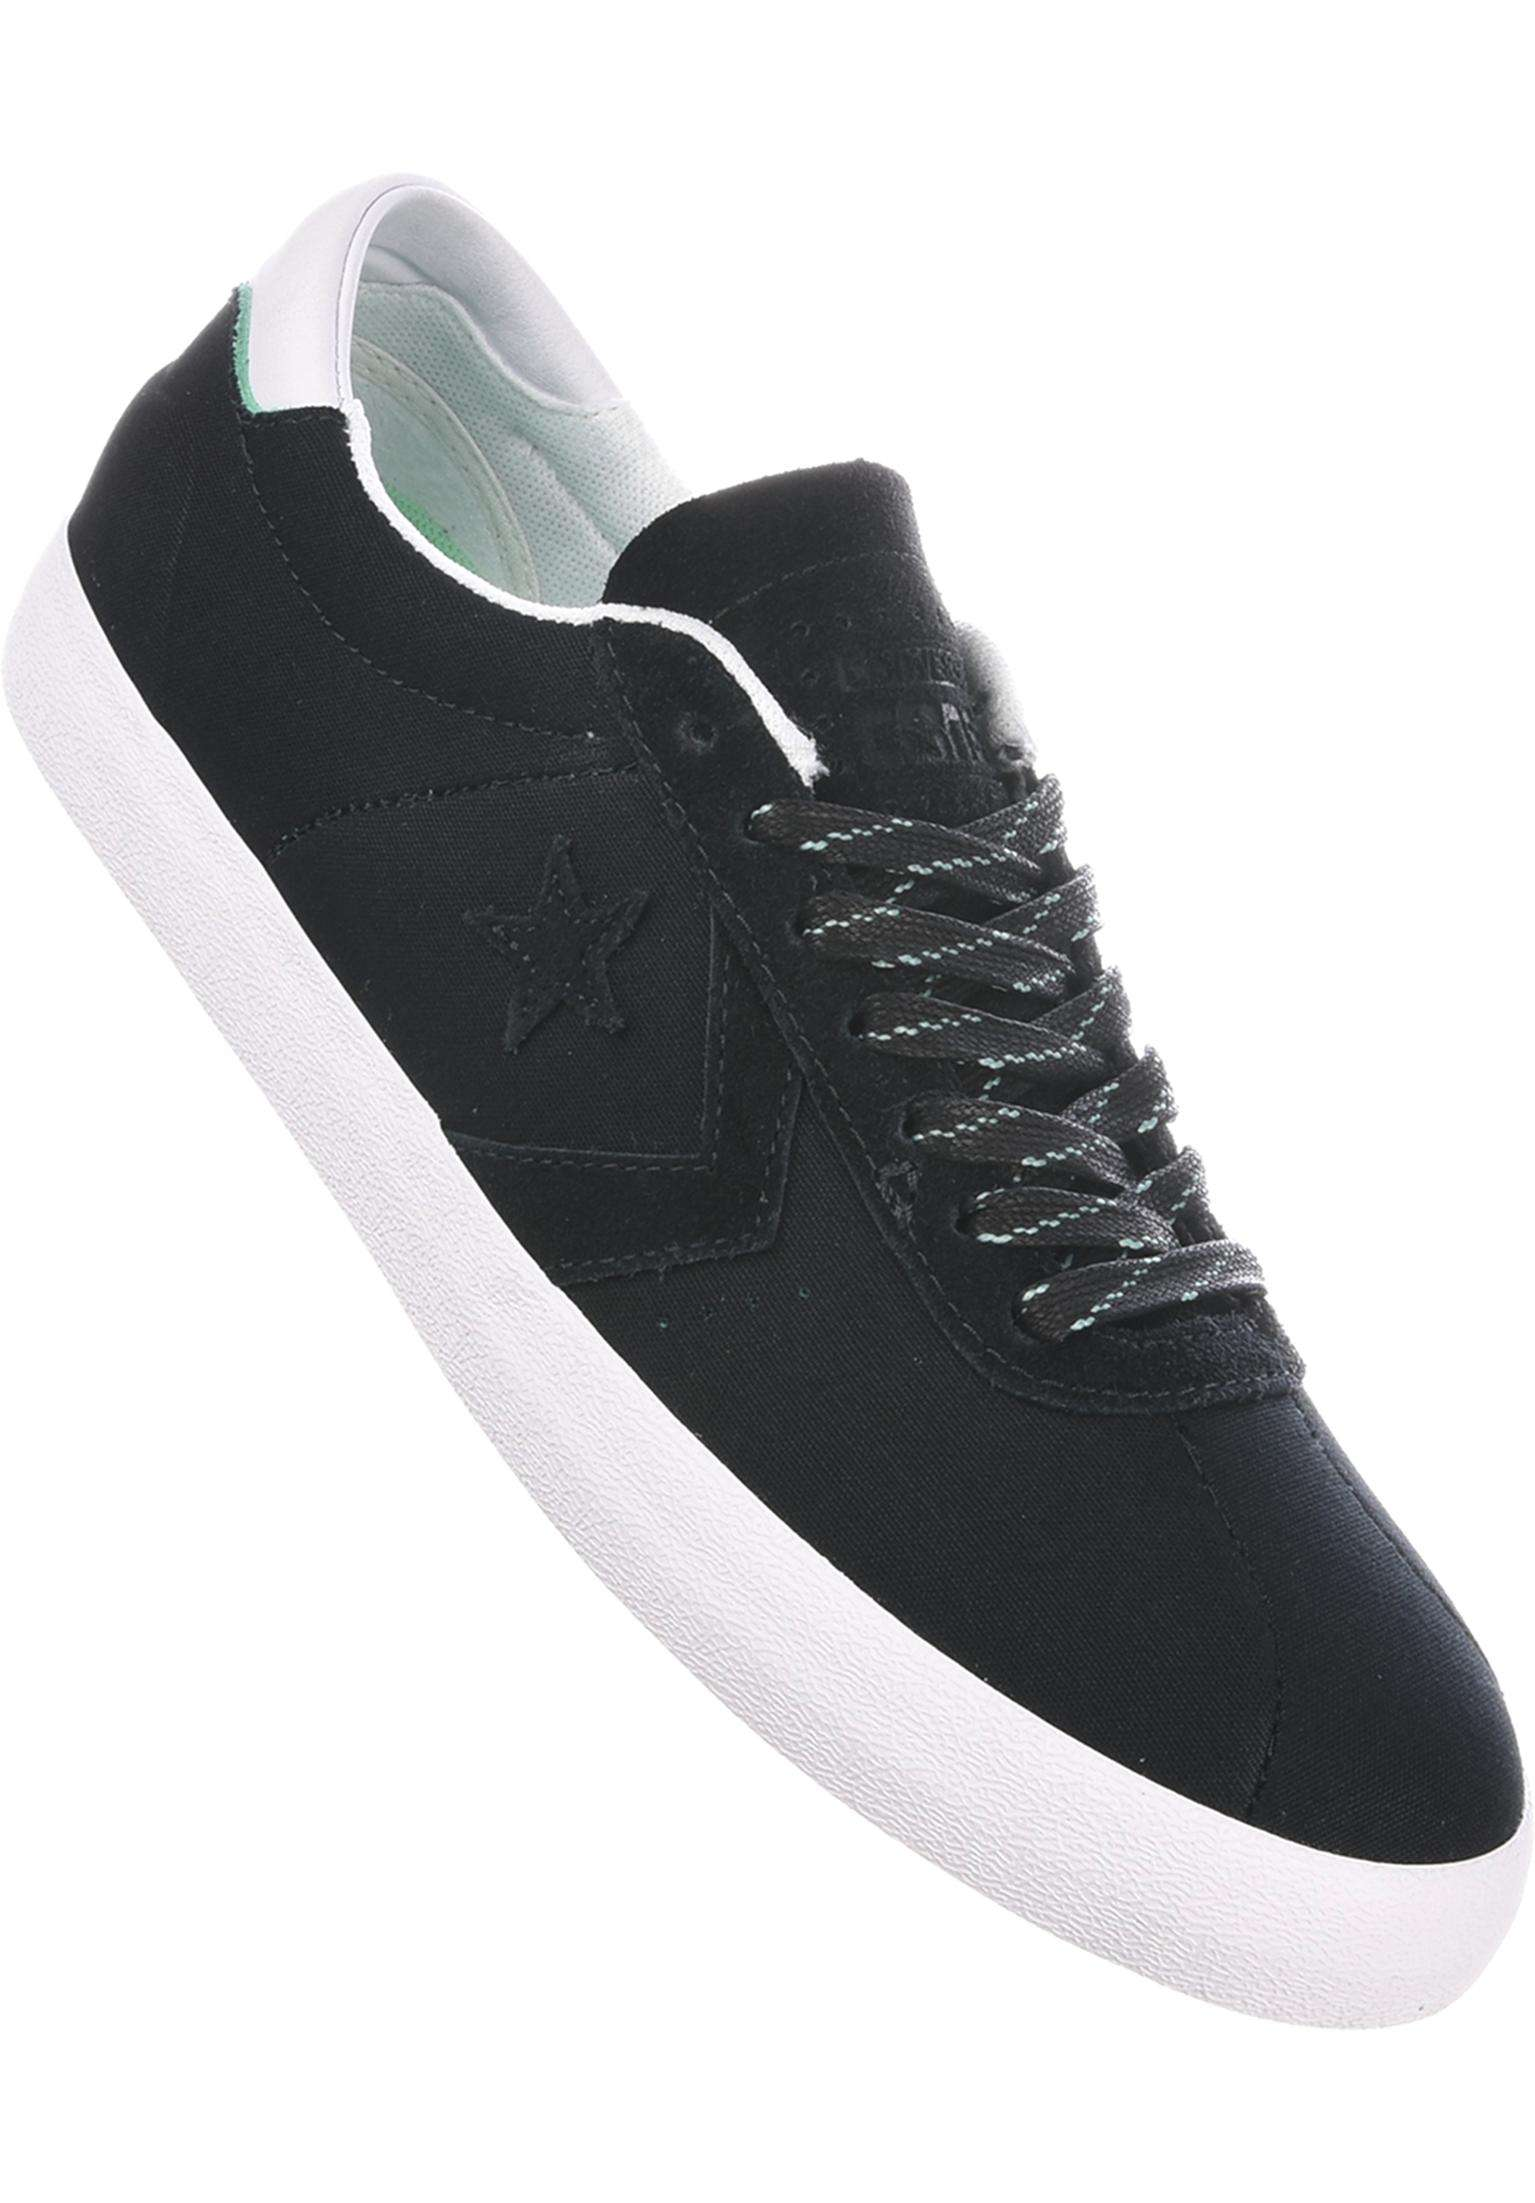 0e388d91b01 Breakpoint Pro Ox Converse CONS All Shoes in black-white-green for Men